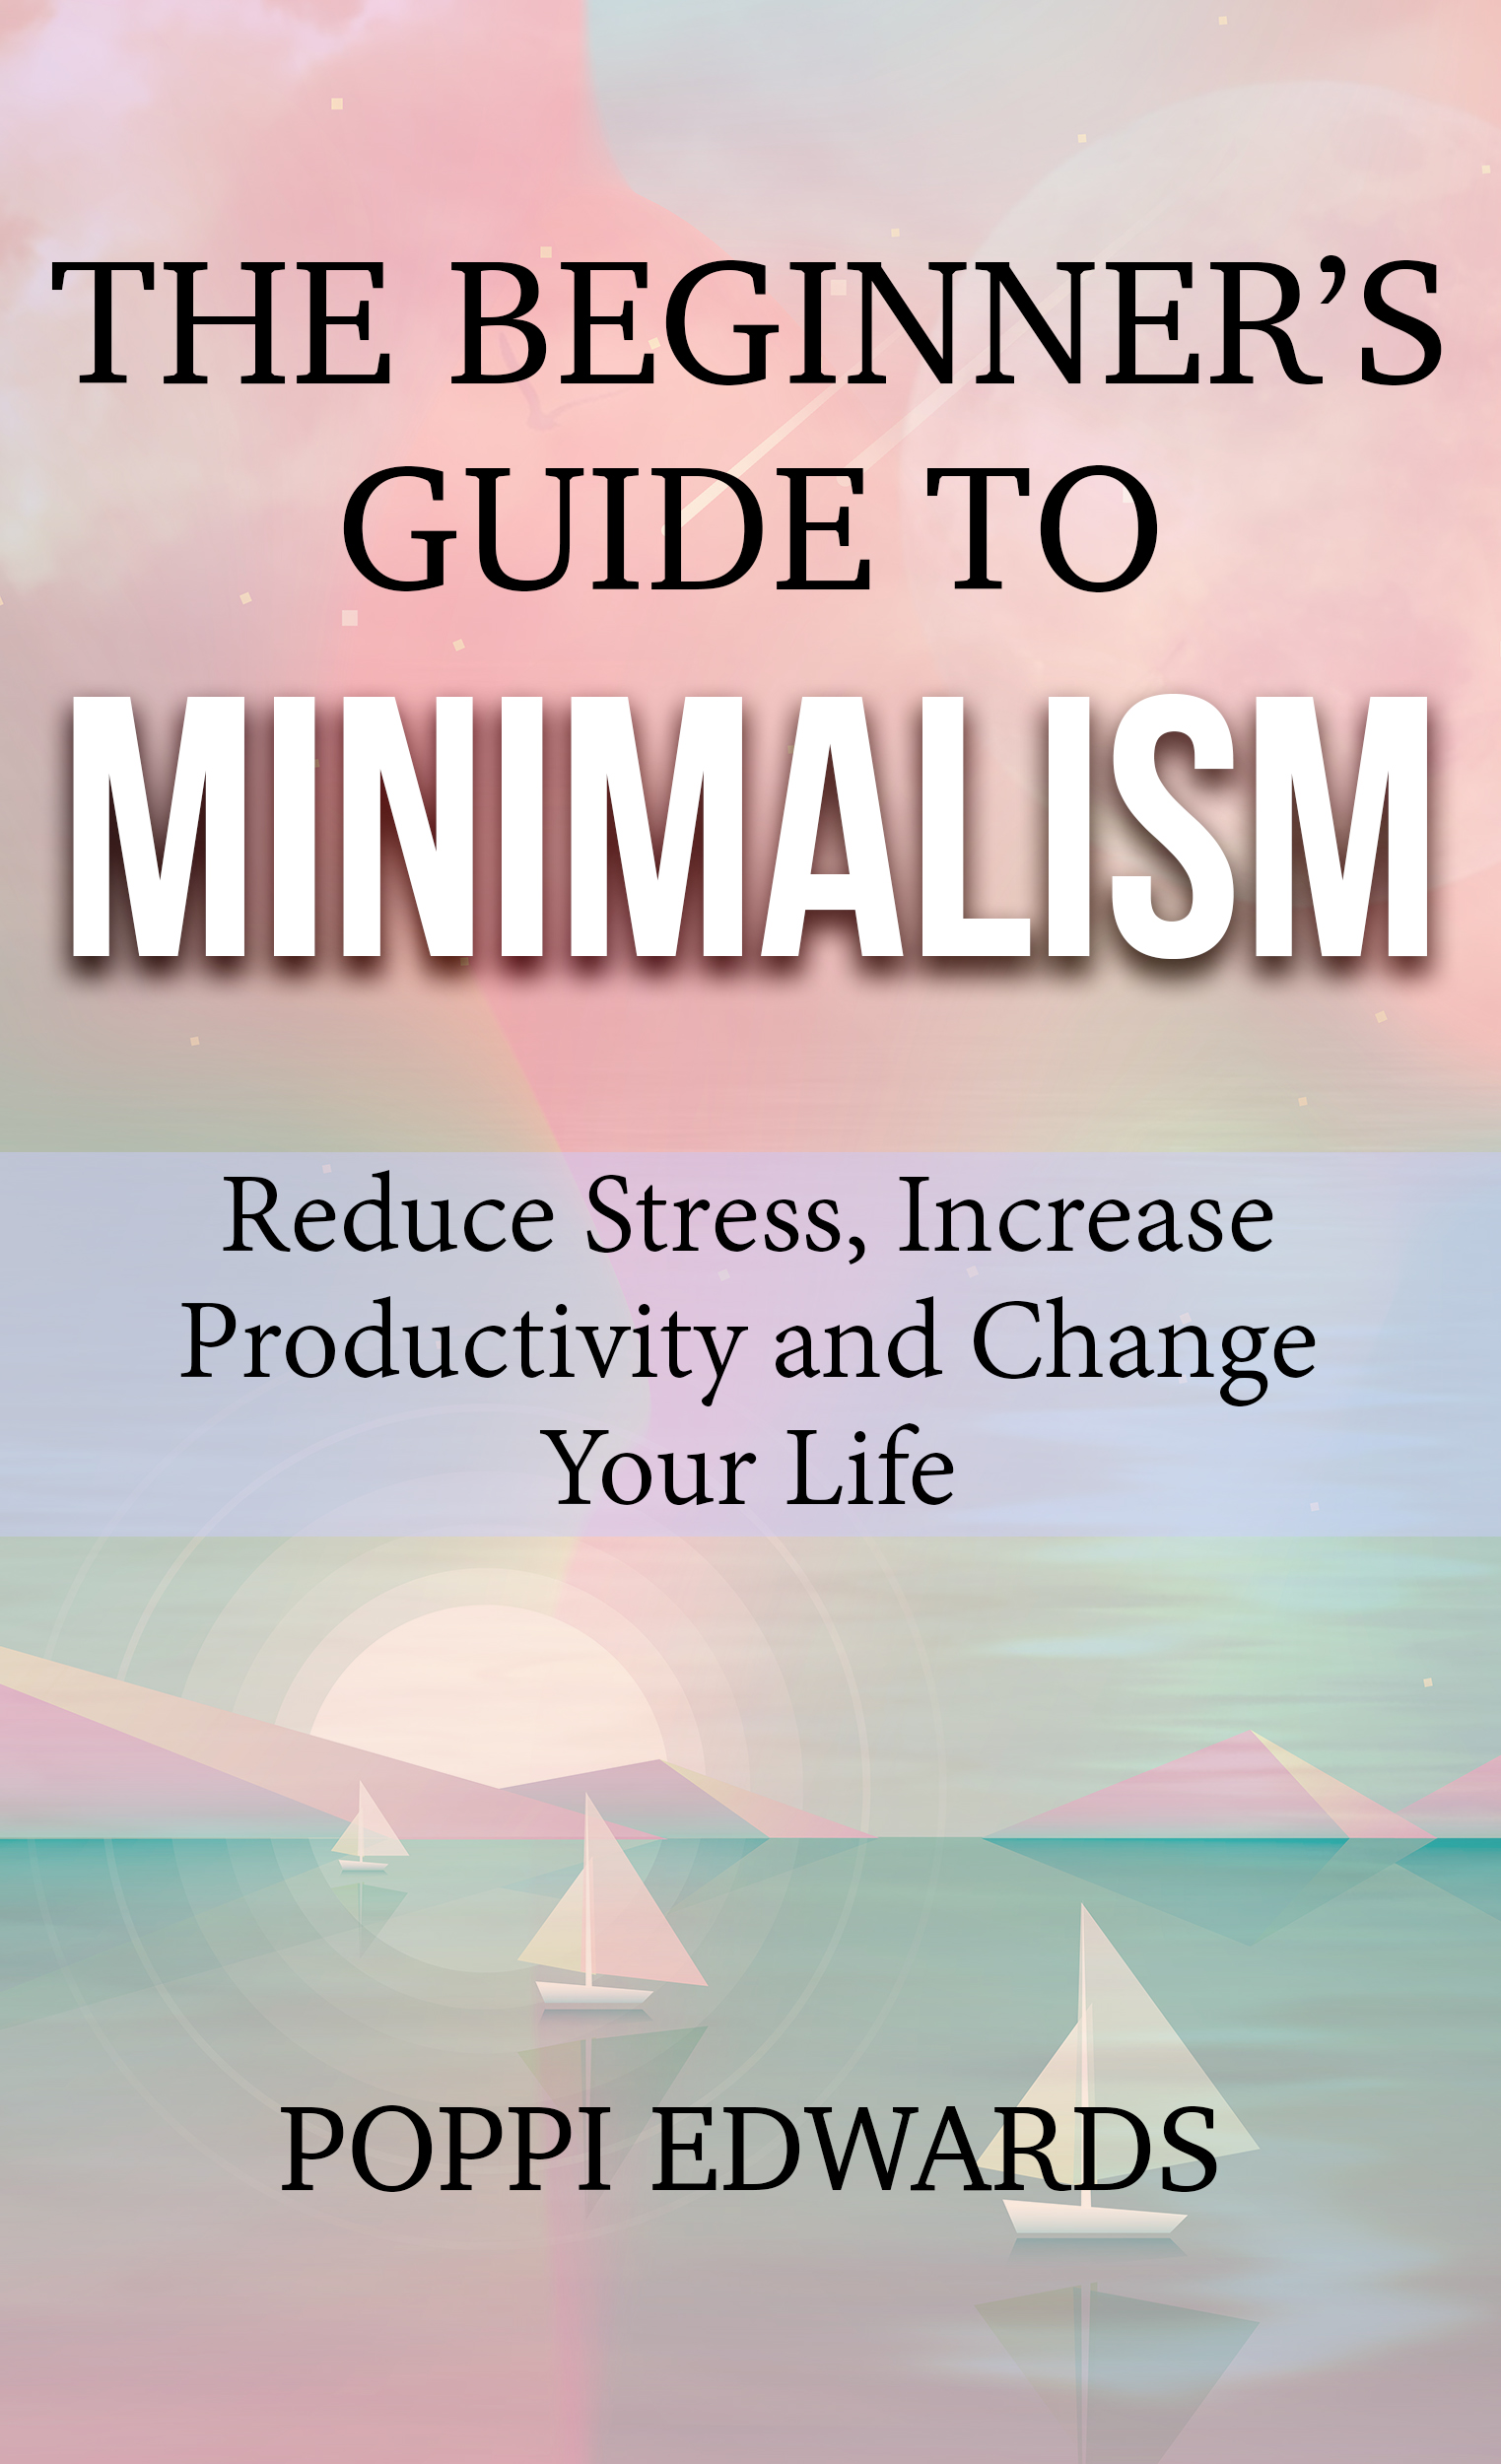 The beginner's guide to minimalism: reduce stress, increase productivity and change your life